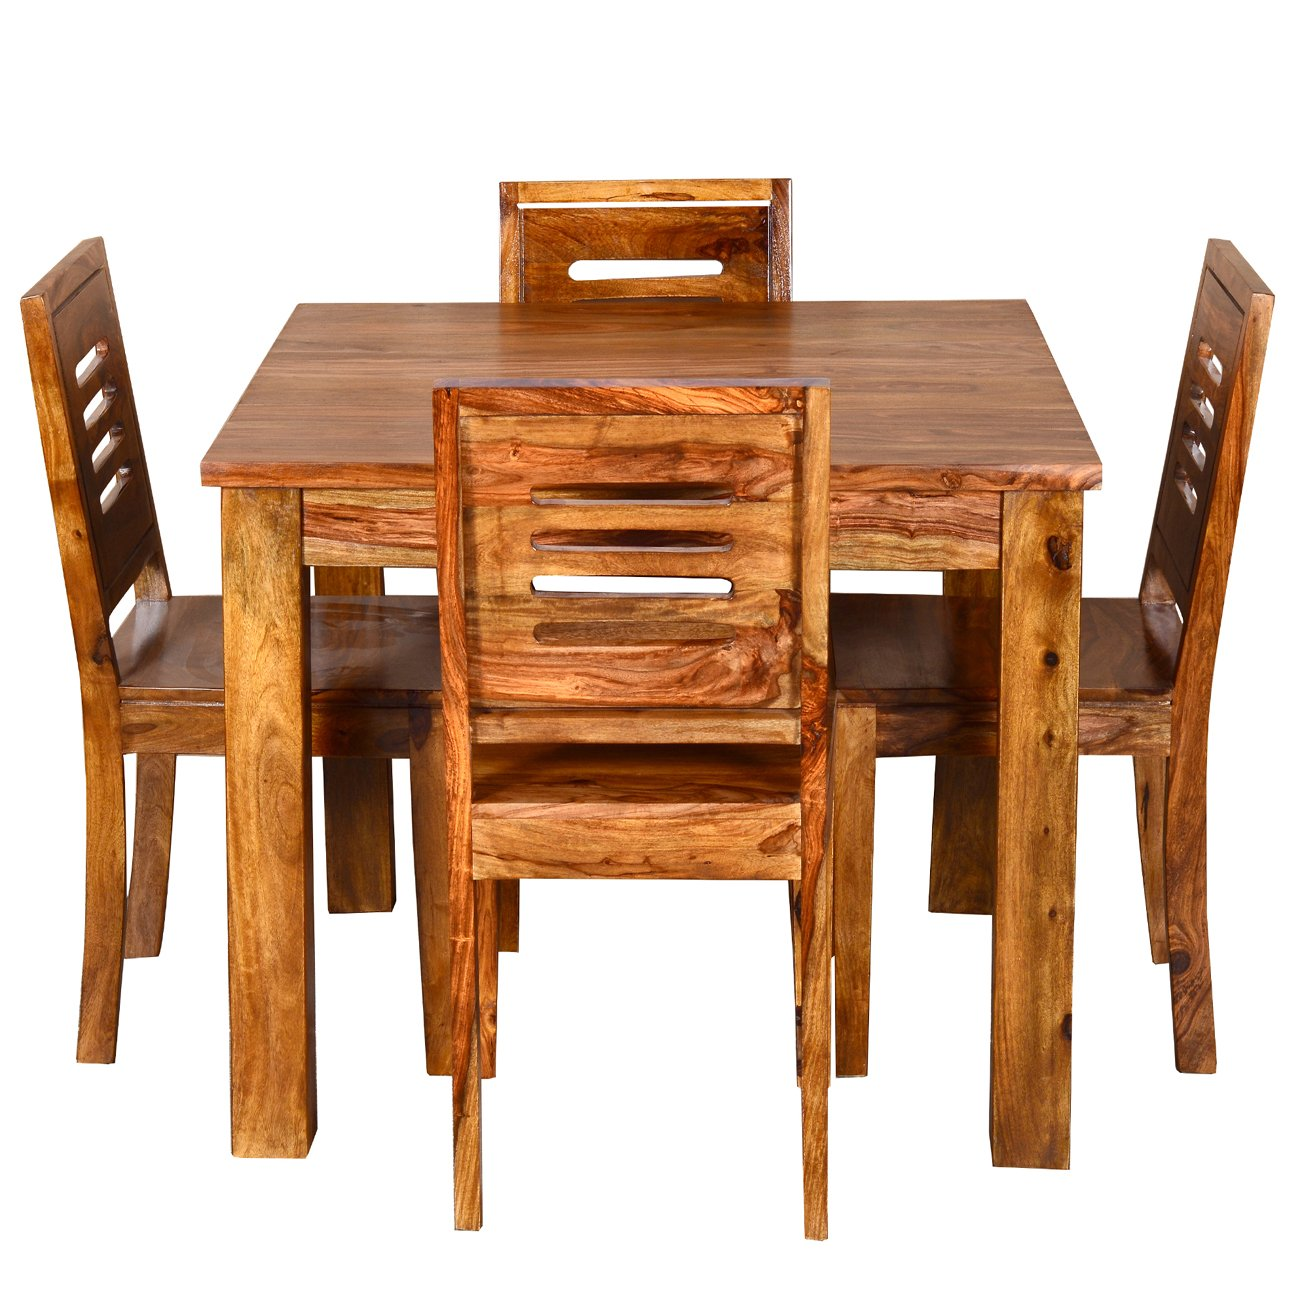 Wooden Dining Table Set: Ringabell Square Four Seater Solid Wood Dining Table